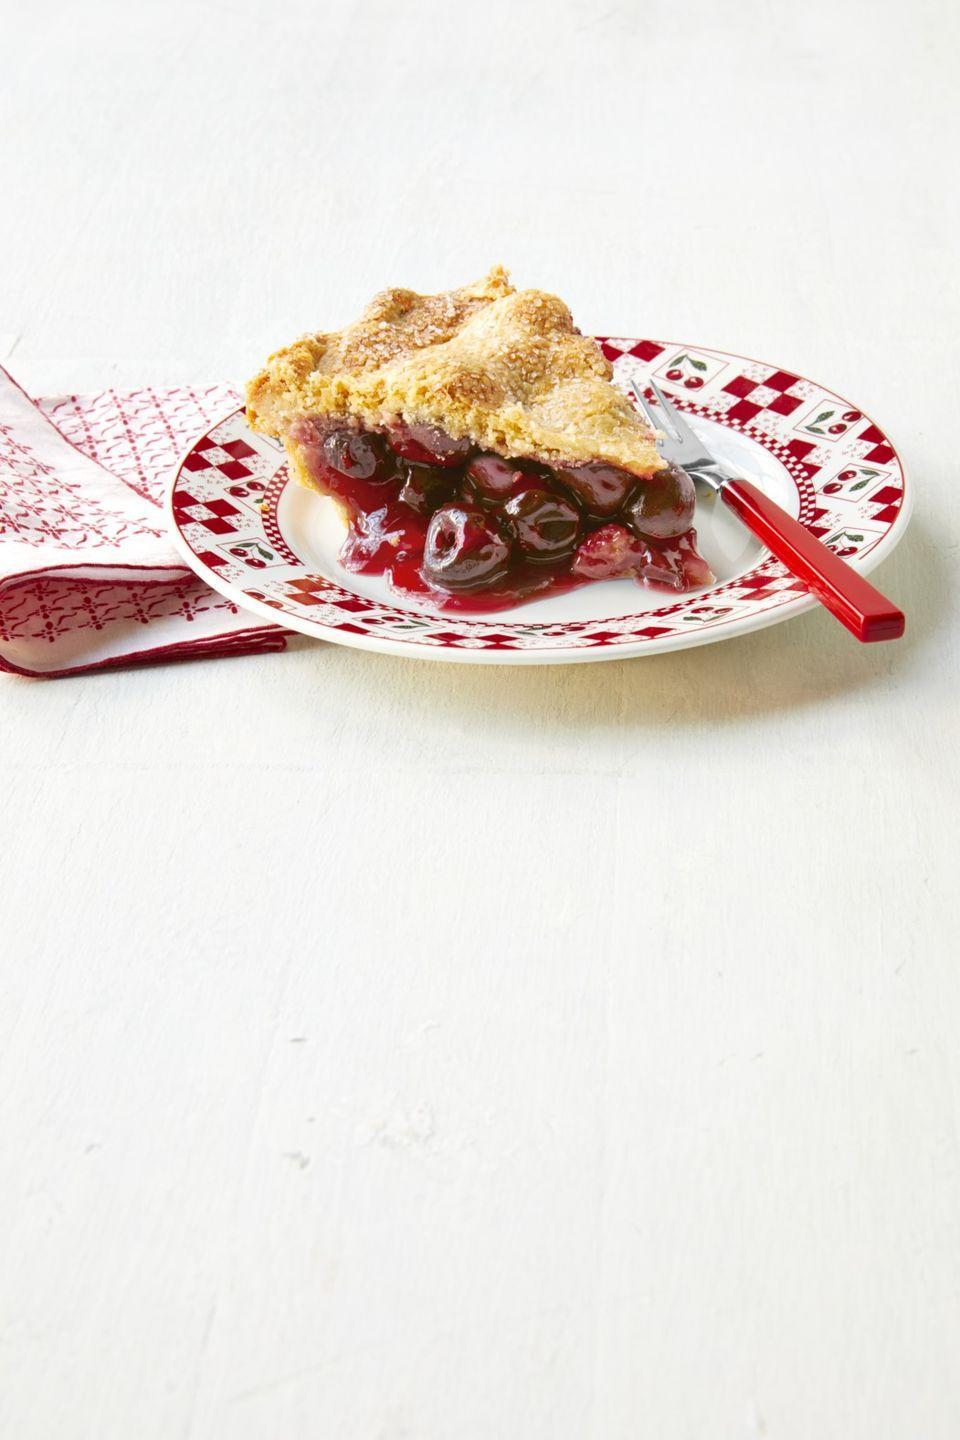 """<p>It isn't a 4th of July celebration without a gorgeous cherry pie, topped with homemade whipped cream.</p><p><strong><a href=""""https://thepioneerwoman.com/food-cooking/recipes/a32098700/cherry-pie-recipe/"""" rel=""""nofollow noopener"""" target=""""_blank"""" data-ylk=""""slk:Get the recipe."""" class=""""link rapid-noclick-resp"""">Get the recipe.</a></strong></p><p><a class=""""link rapid-noclick-resp"""" href=""""https://go.redirectingat.com?id=74968X1596630&url=https%3A%2F%2Fwww.walmart.com%2Fip%2FThe-Pioneer-Woman-Vintage-Floral-9-Inch-Pie-Plate%2F130212818&sref=https%3A%2F%2Fwww.thepioneerwoman.com%2Ffood-cooking%2Fmeals-menus%2Fg32109085%2Ffourth-of-july-desserts%2F"""" rel=""""nofollow noopener"""" target=""""_blank"""" data-ylk=""""slk:SHOP PIE PLATES"""">SHOP PIE PLATES</a></p>"""